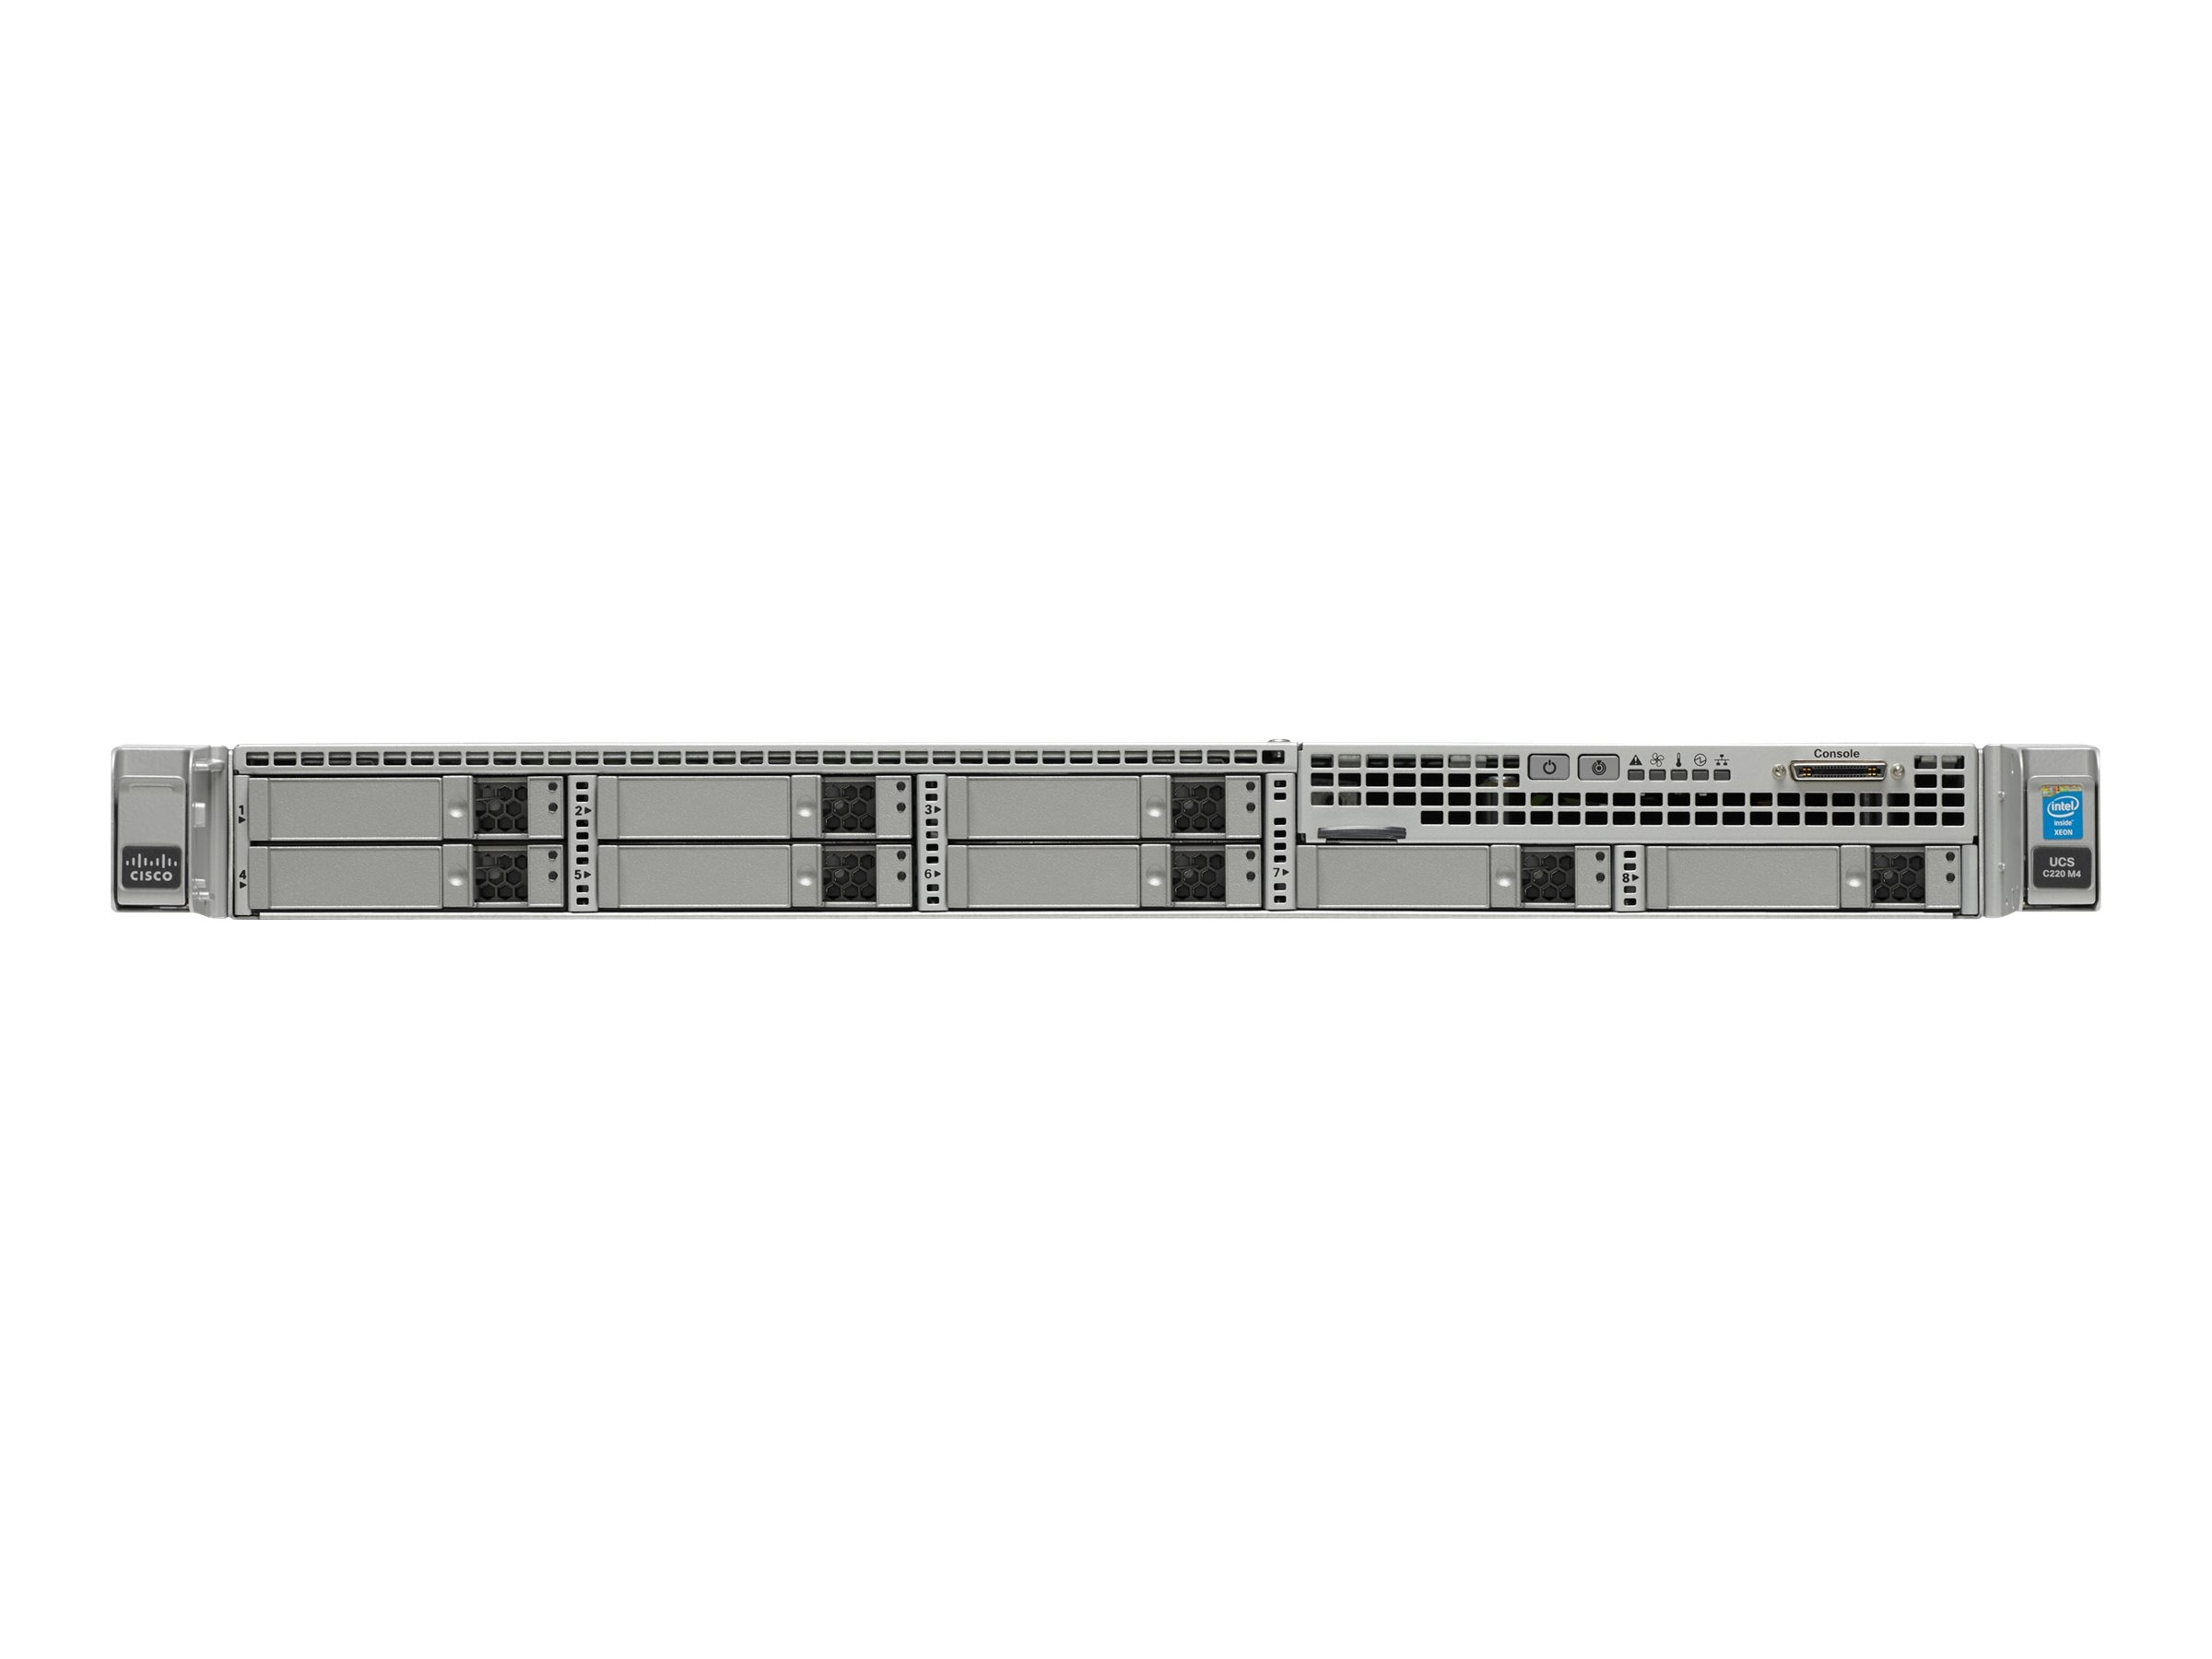 Cisco UCS SP8 C220 M4 Entry Plus Xeon E5-2630 v3, UCS-EZ8-C220M4-EP